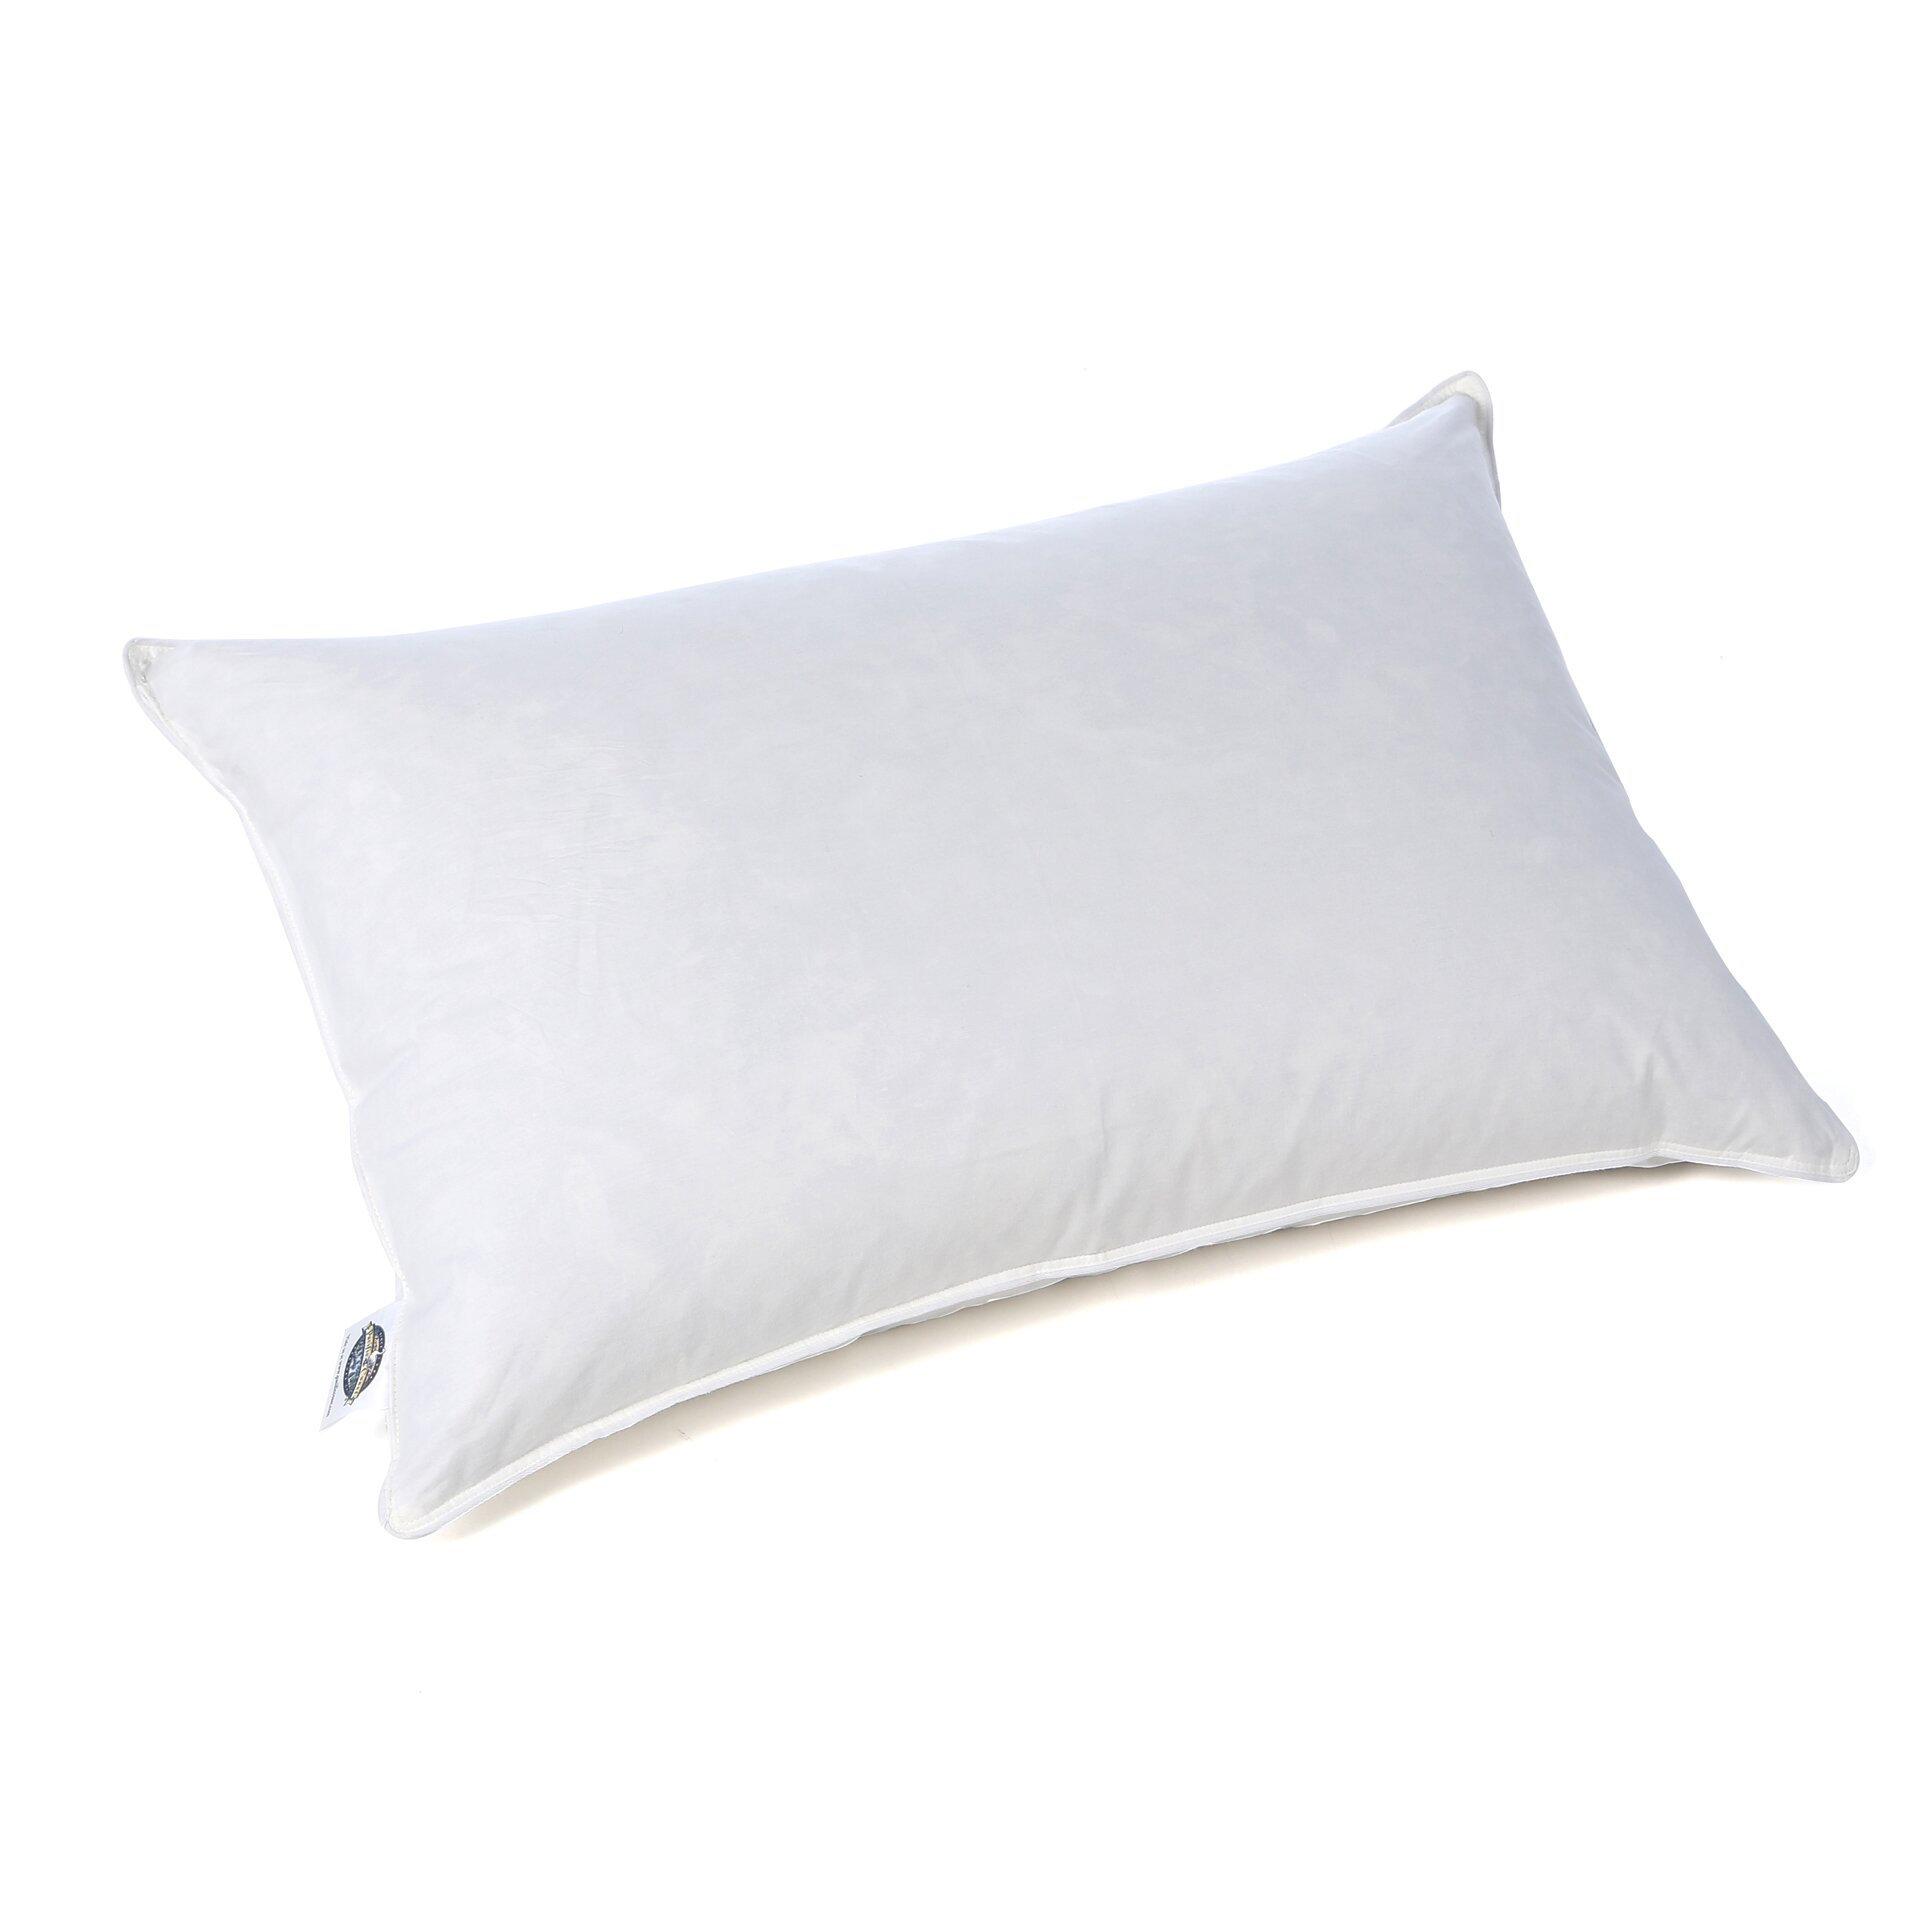 Pacific Coast Feather Euro Feather Pillow Amp Reviews Wayfair